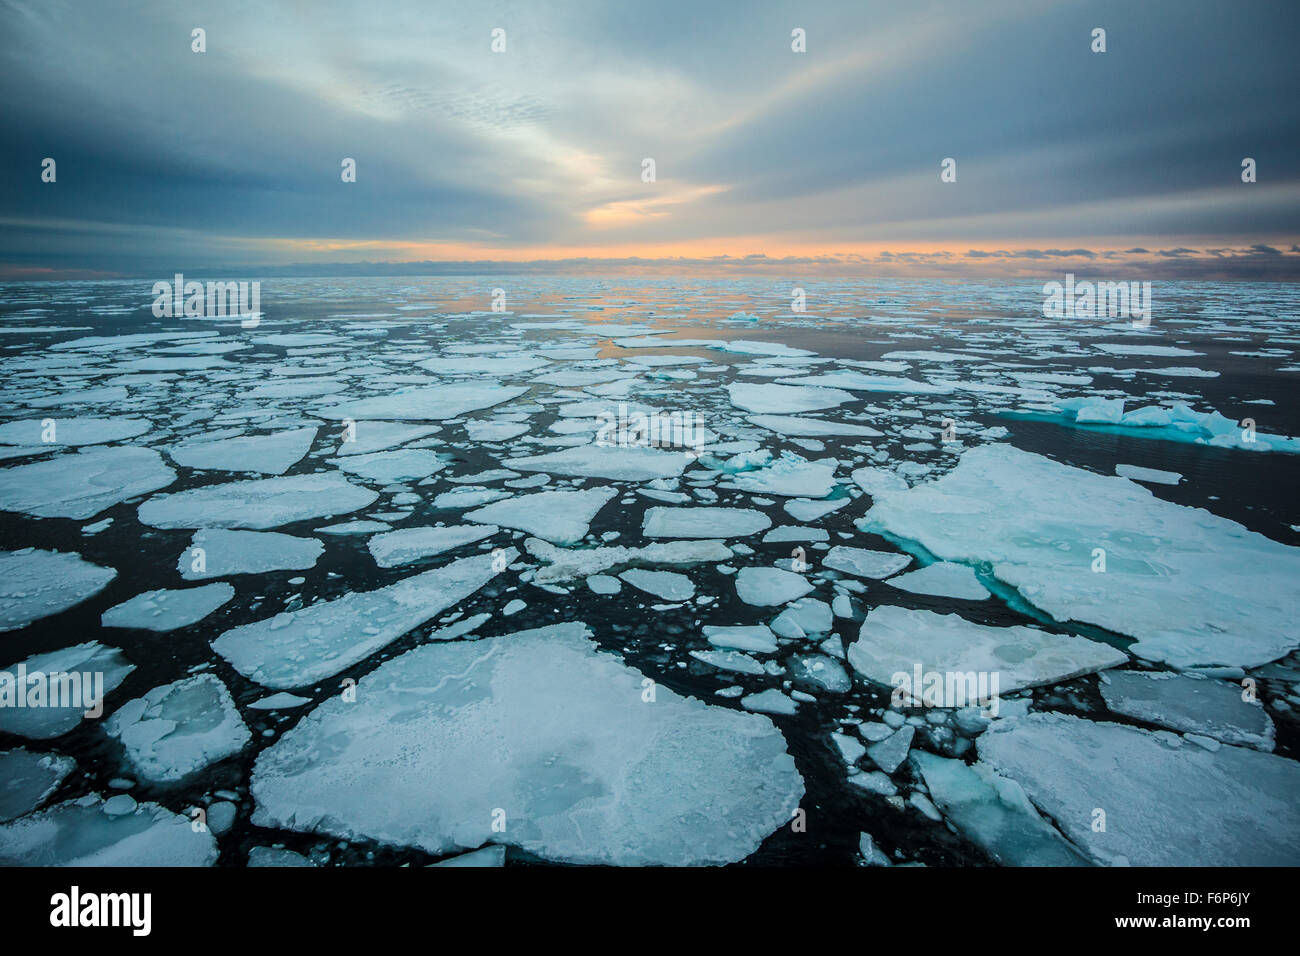 Sunrise over sea ice - Stock Image